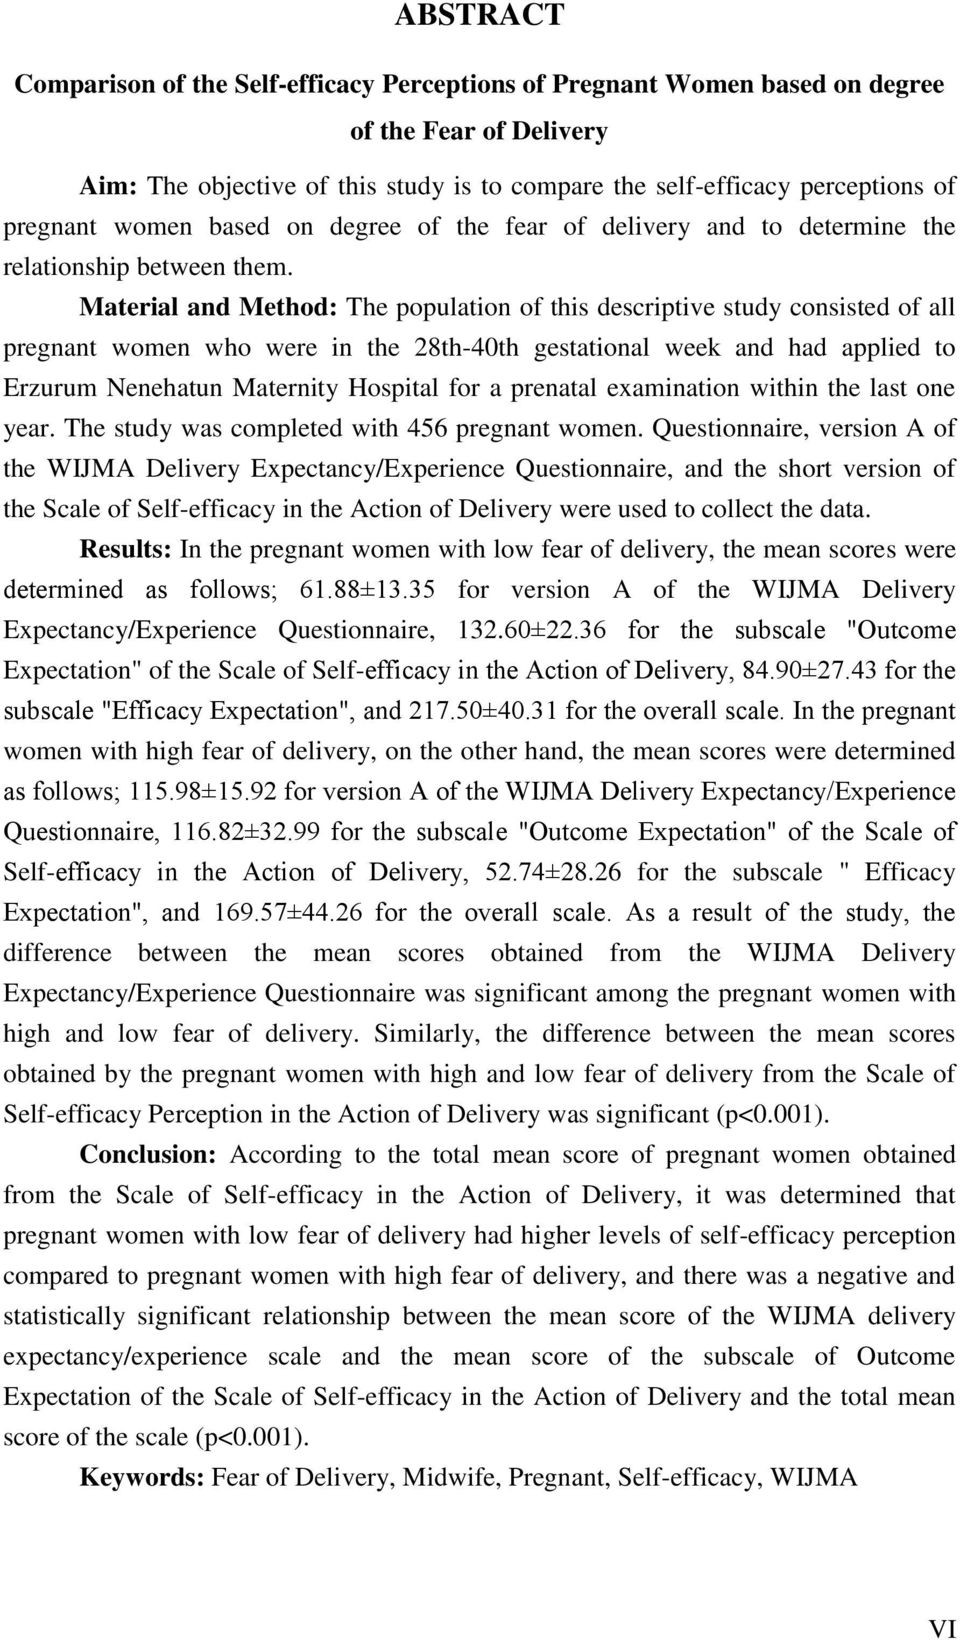 Material and Method: The population of this descriptive study consisted of all pregnant women who were in the 28th-40th gestational week and had applied to Erzurum Nenehatun Maternity Hospital for a